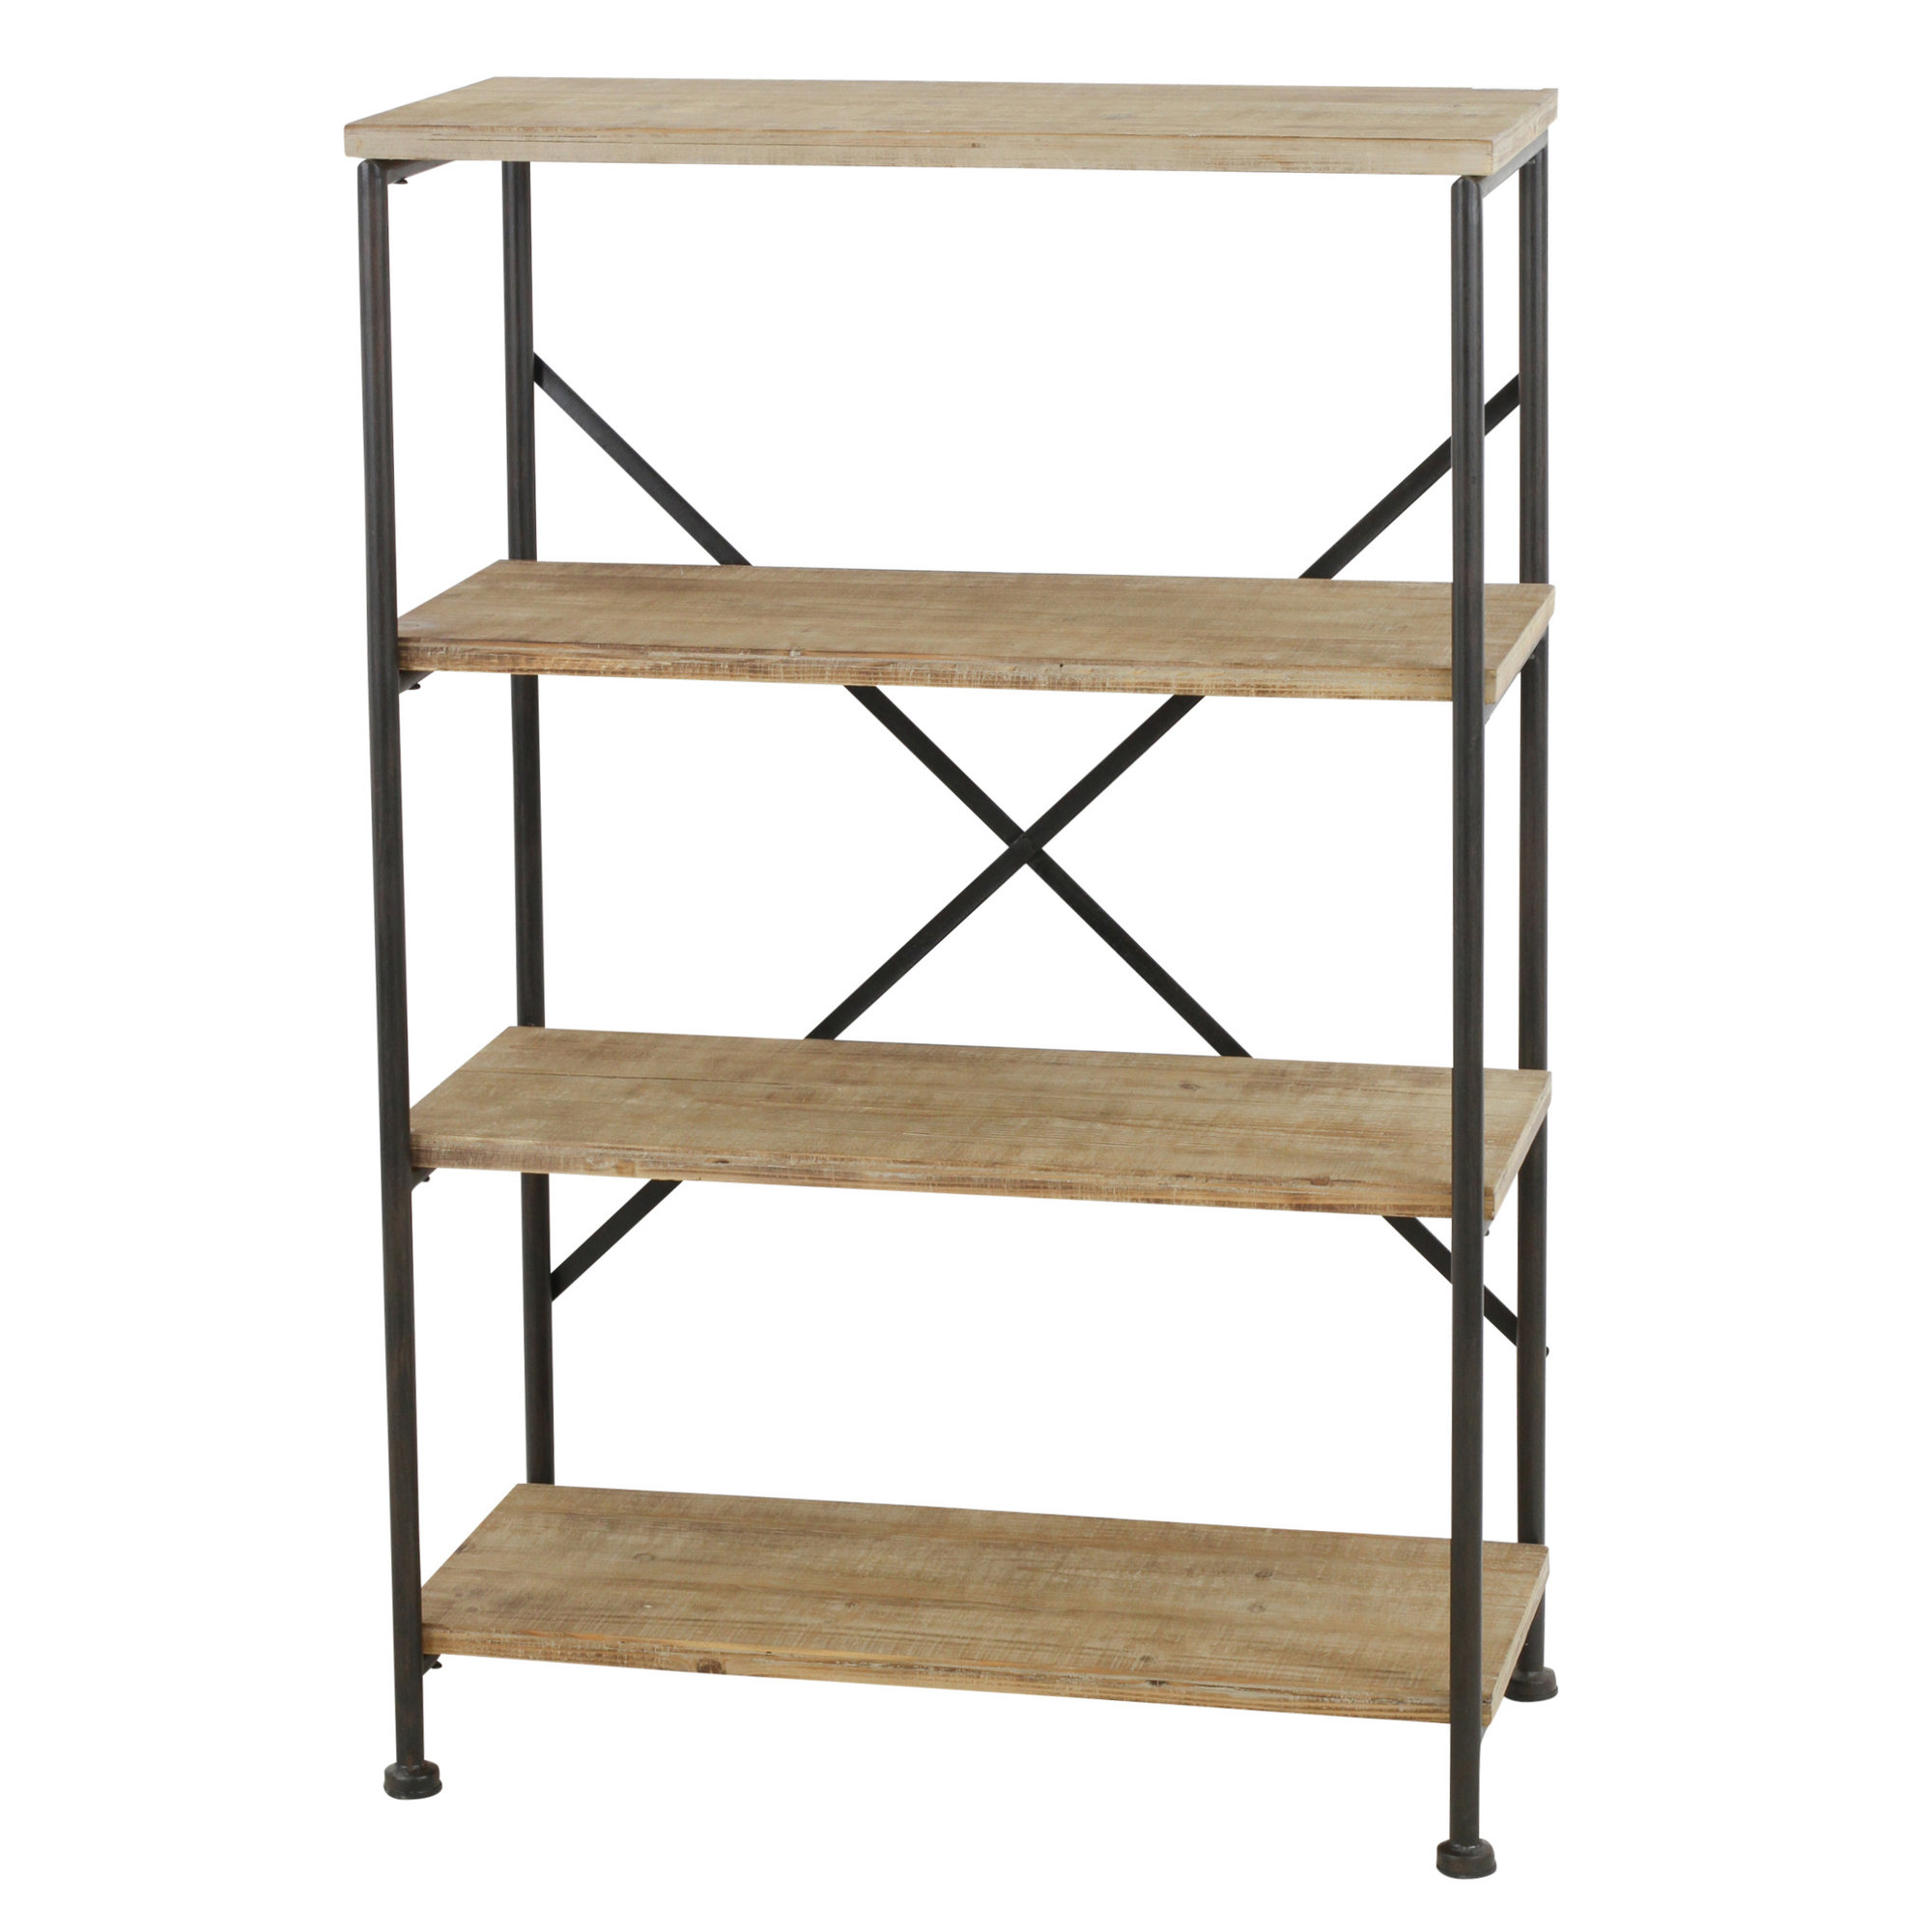 Babbitt Etagere Bookcases Intended For Most Popular Details About Gracie Oaks Vezina 4 Shelf Industrial Etagere Bookcase (View 4 of 20)